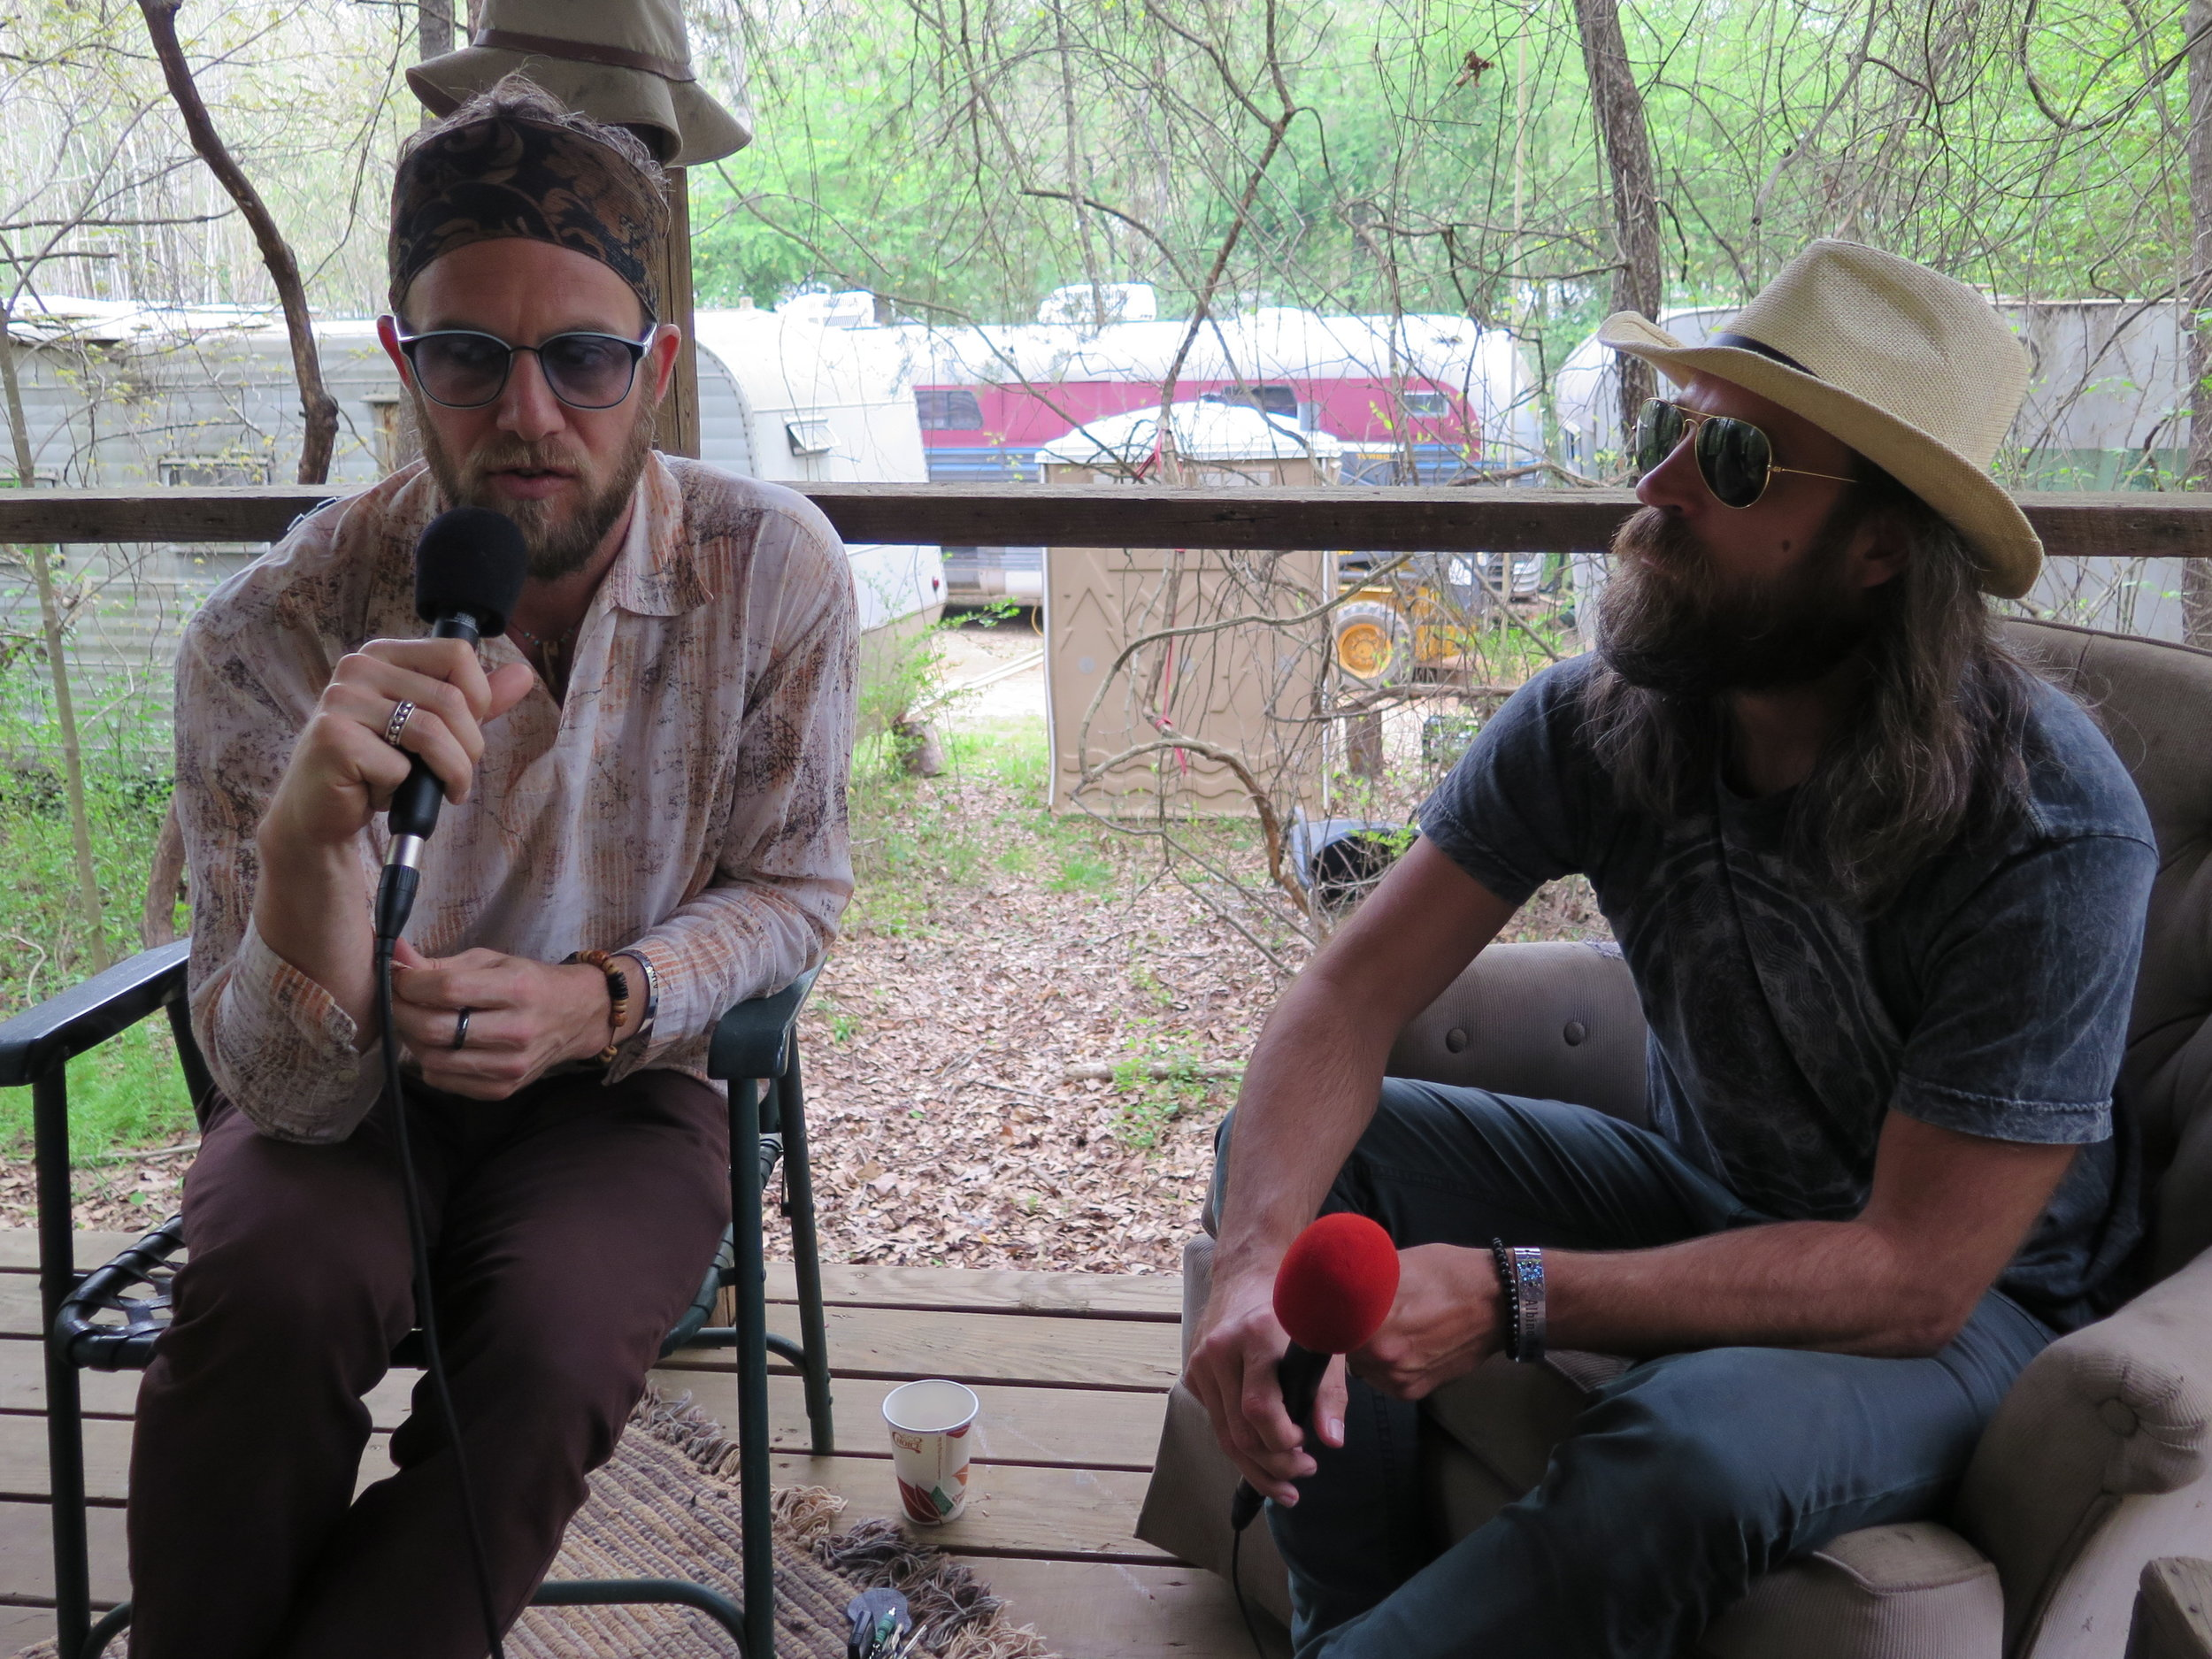 Mike Sivilli (left) and Dan Lotti (right) of Dangermuffin interviewed in the Nap Shack at the Albino Skunk Festival, April 11 2019